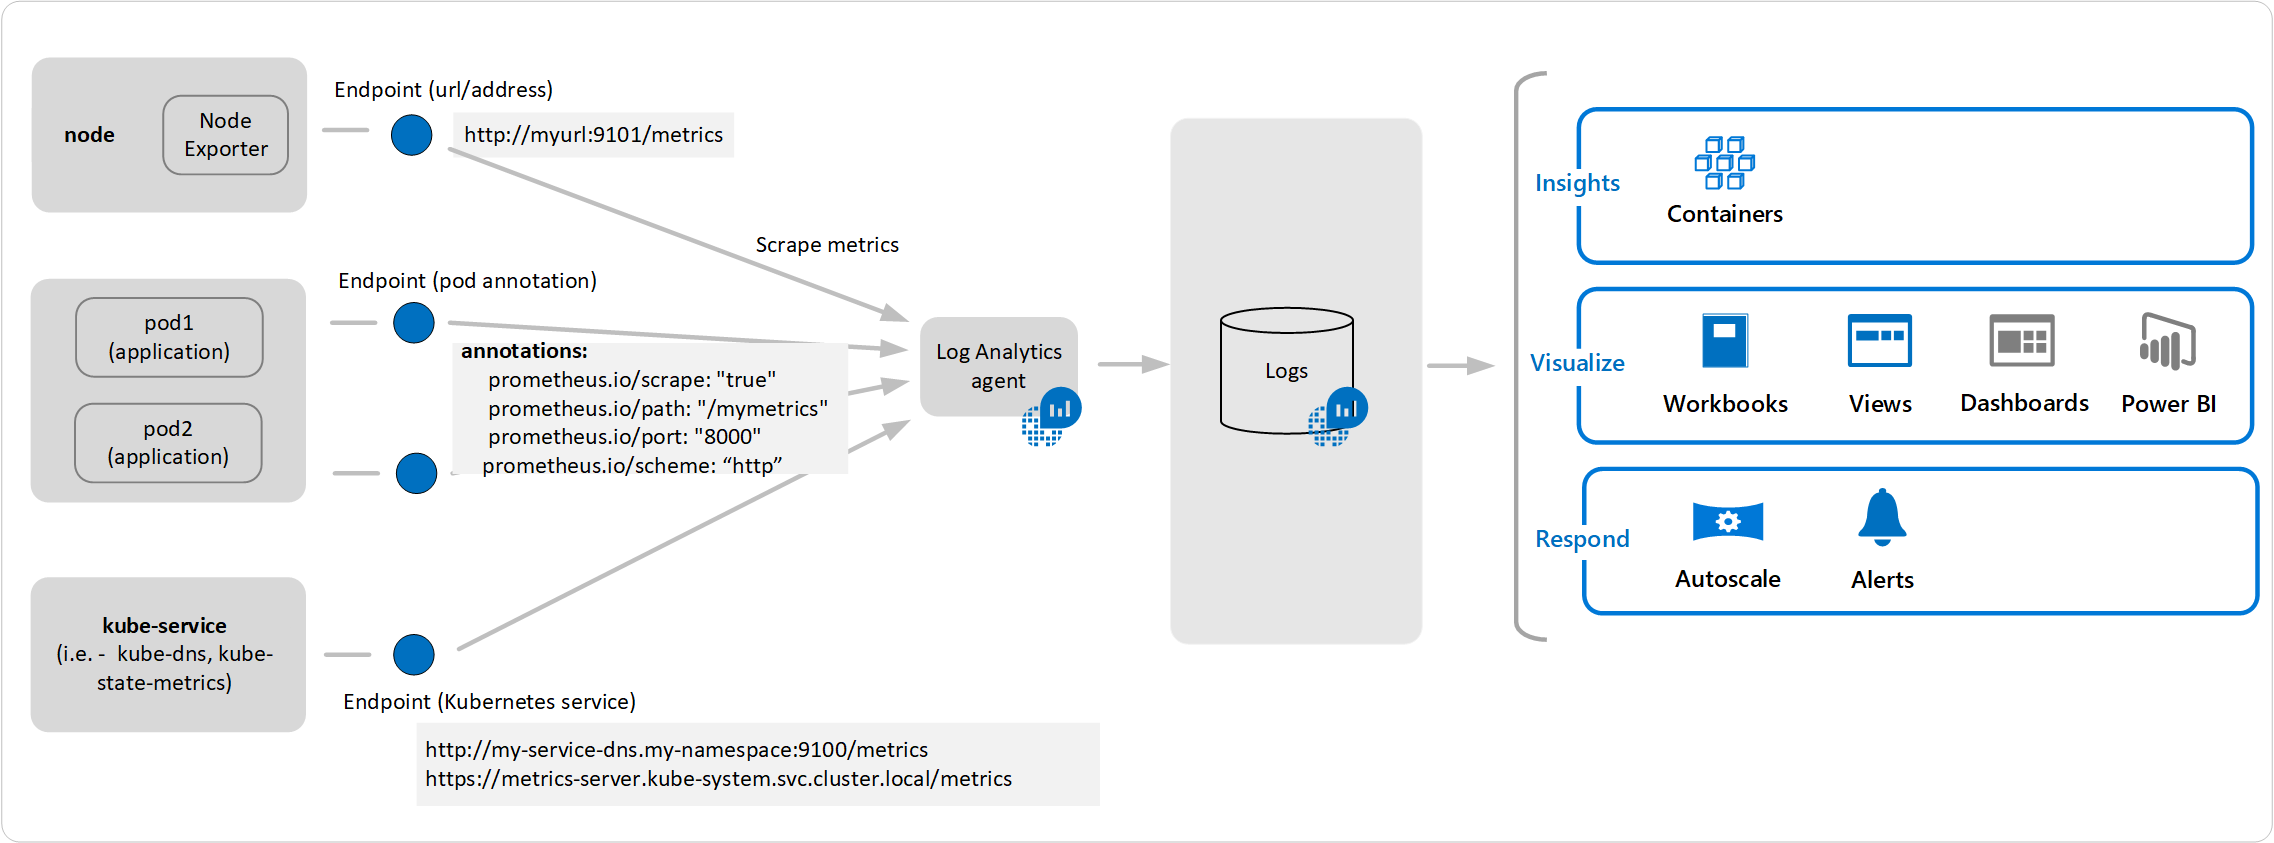 Configure Azure Monitor for containers agent data collection